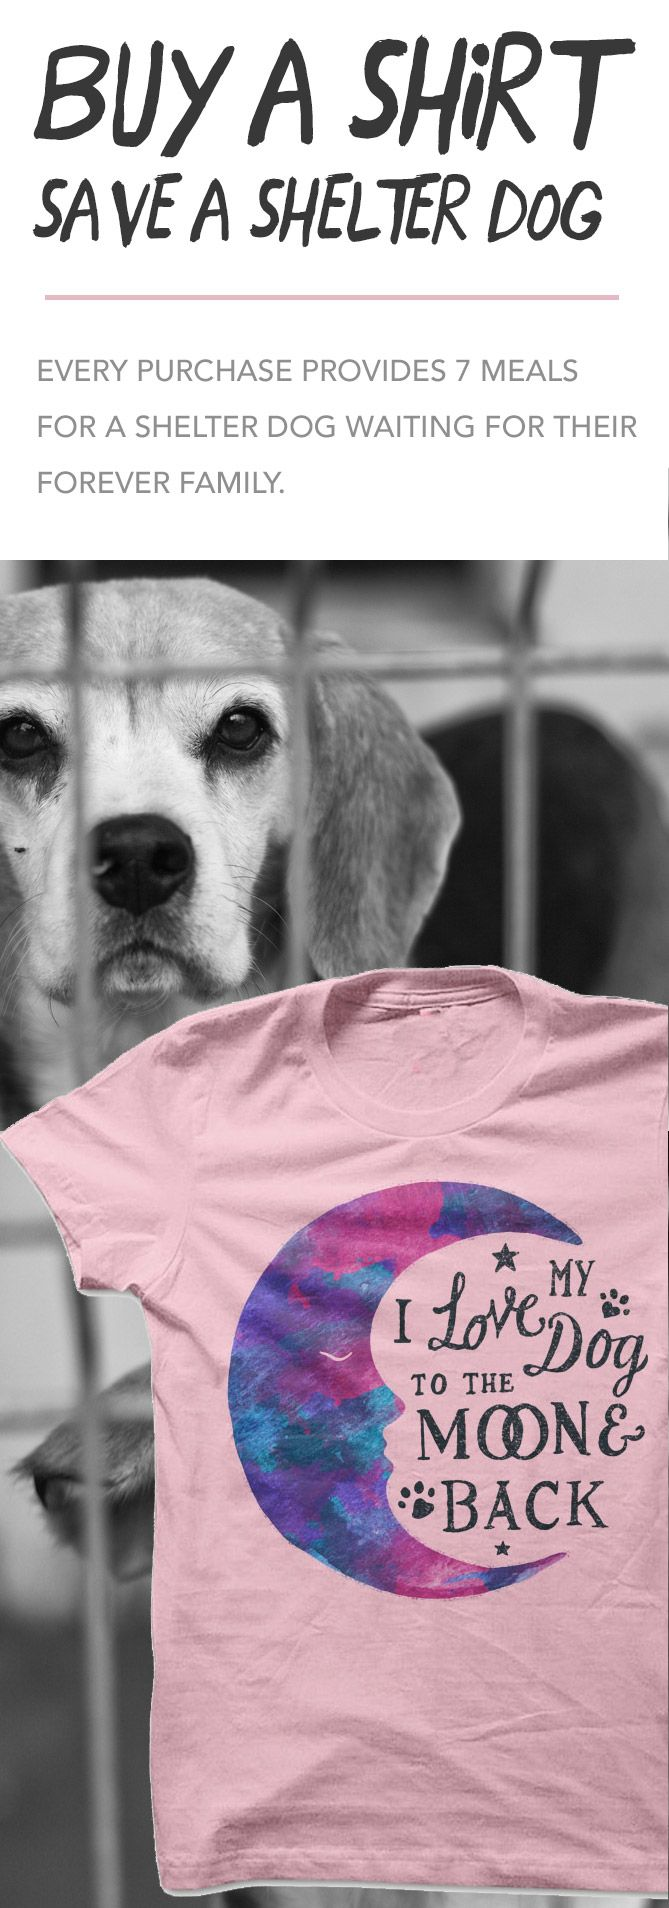 Buy a shirt, save a shelter dog. LOVE THIS! http://iheartdogs.com/product/moon-watercolor/?utm_source=PinterestNetwork_MoonWatercolorSave&utm_medium=link&utm_campaign=PinterestNetwork_MoonWatercolorSave